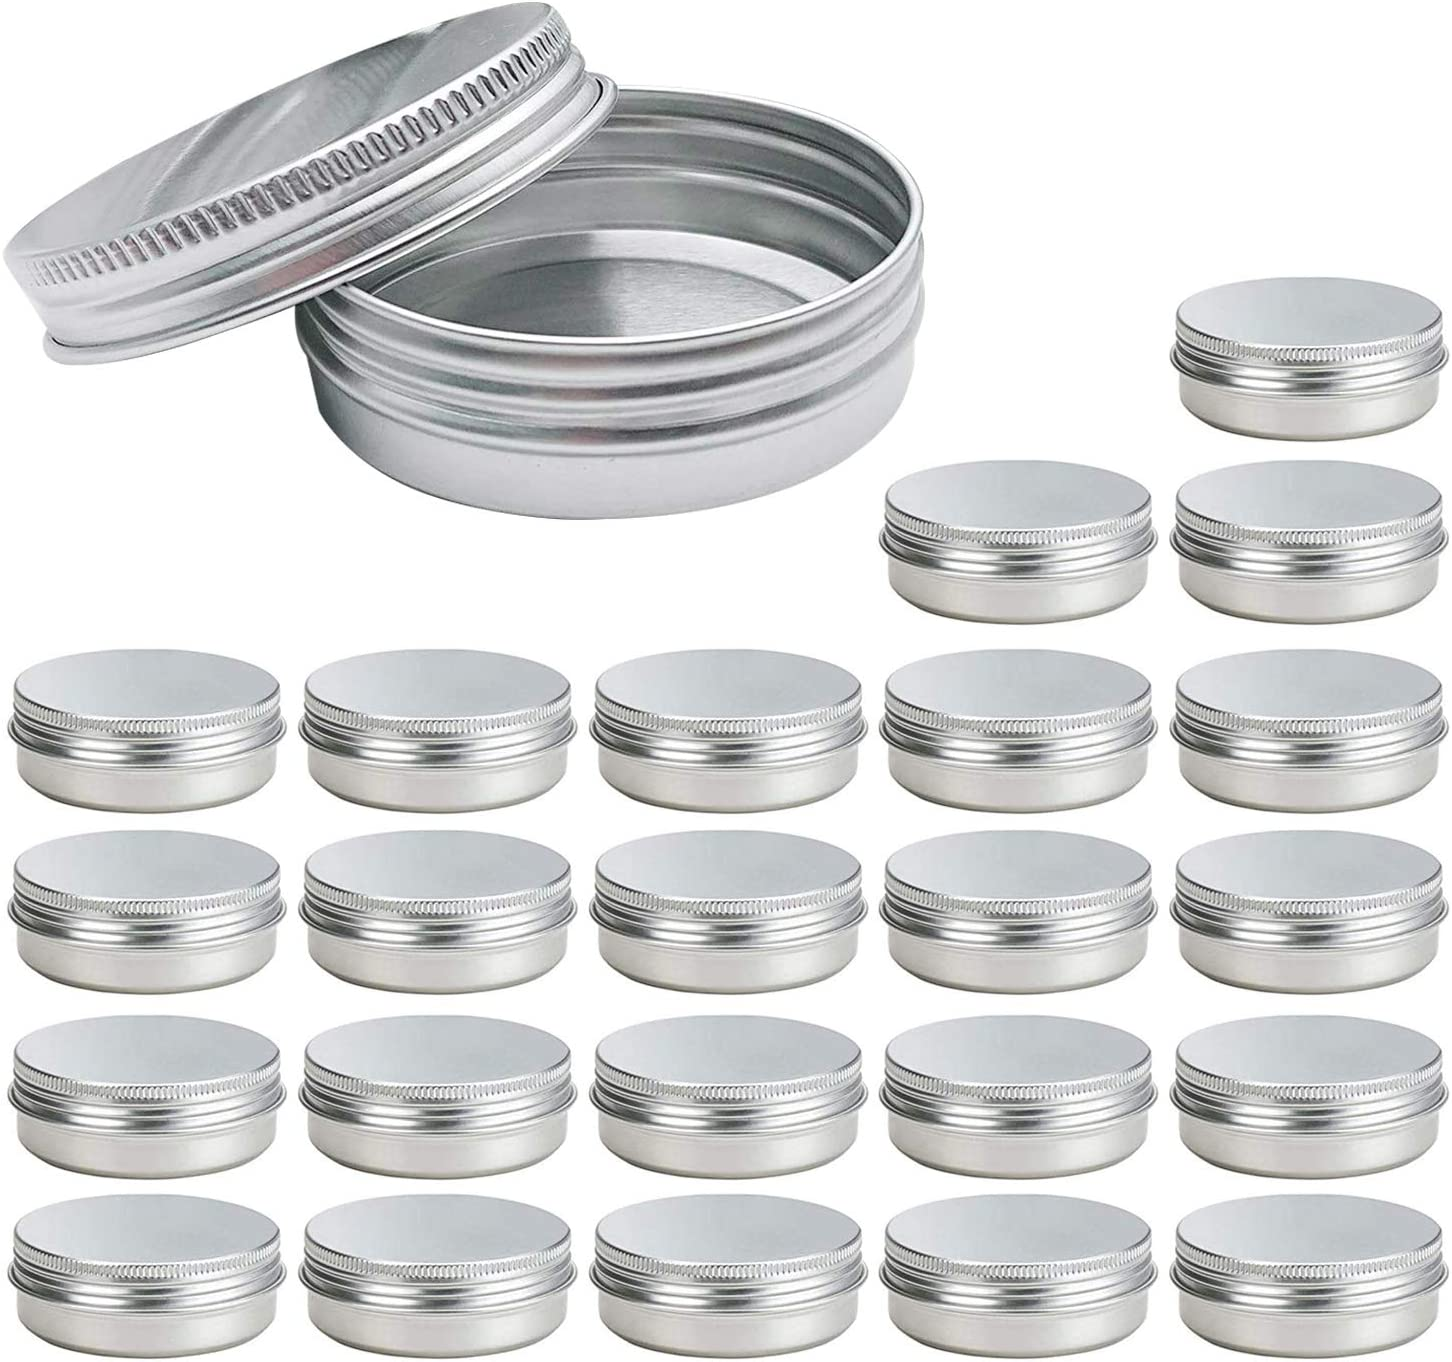 2 Oz Screw Top Round Aluminum Tin Cans 24 Pack Eau Metal Tin Storage Jar Containers with Screw Cap for Lip Balm, Cosmetic, Candles, Salve, Make Up, Eye Shadow, Powder, Tea